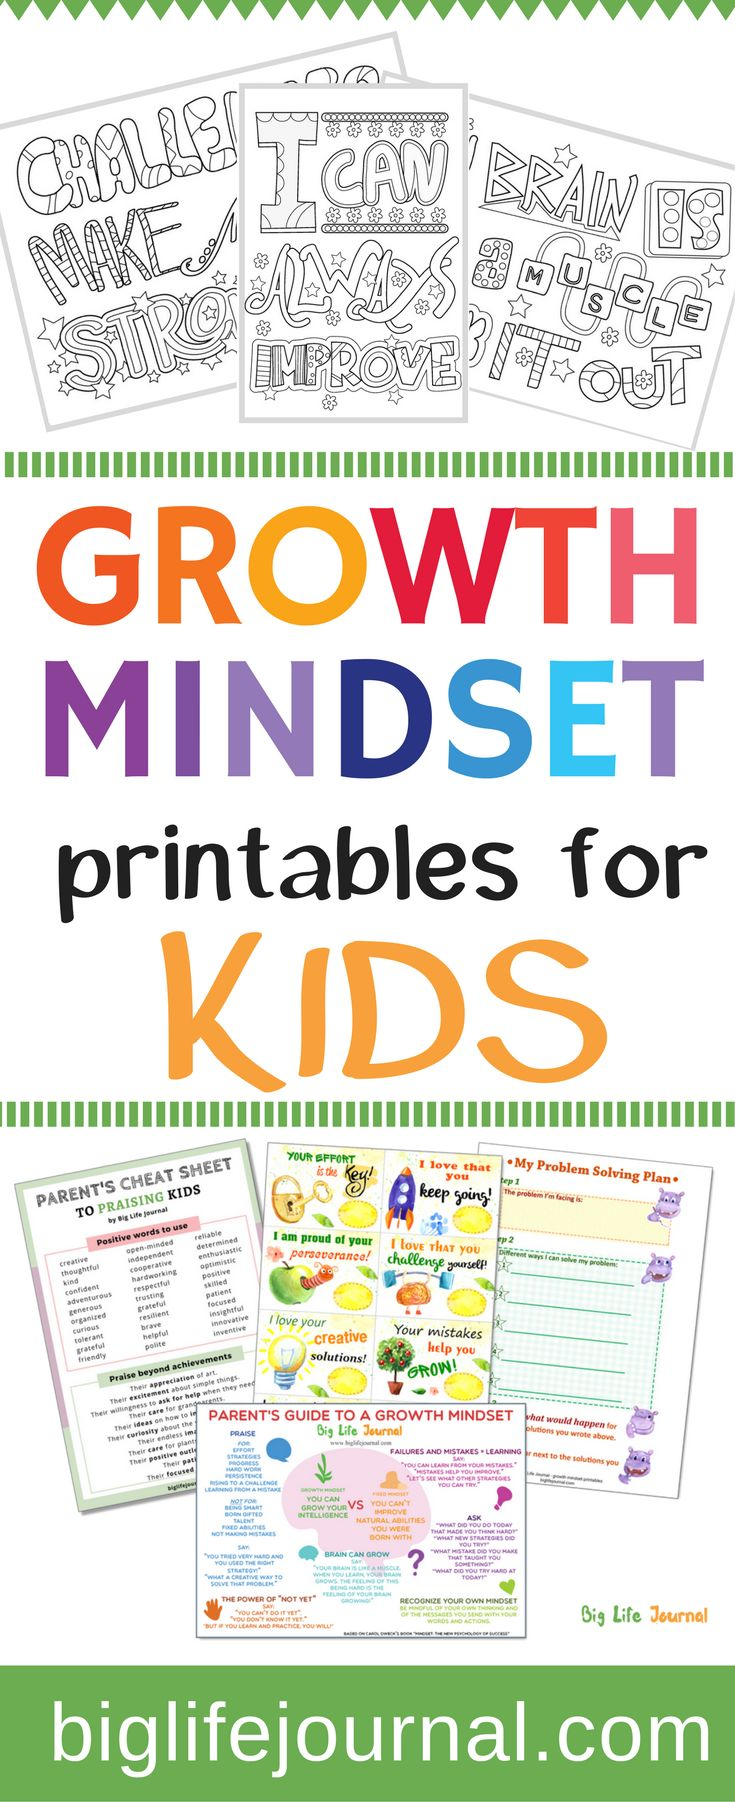 Each week we publish FREE growth mindset printables for kids and parents. Examples include: Parent's guide to a growth mindset, My Problem Solving Plan, My Goal Think Sheet, and more.